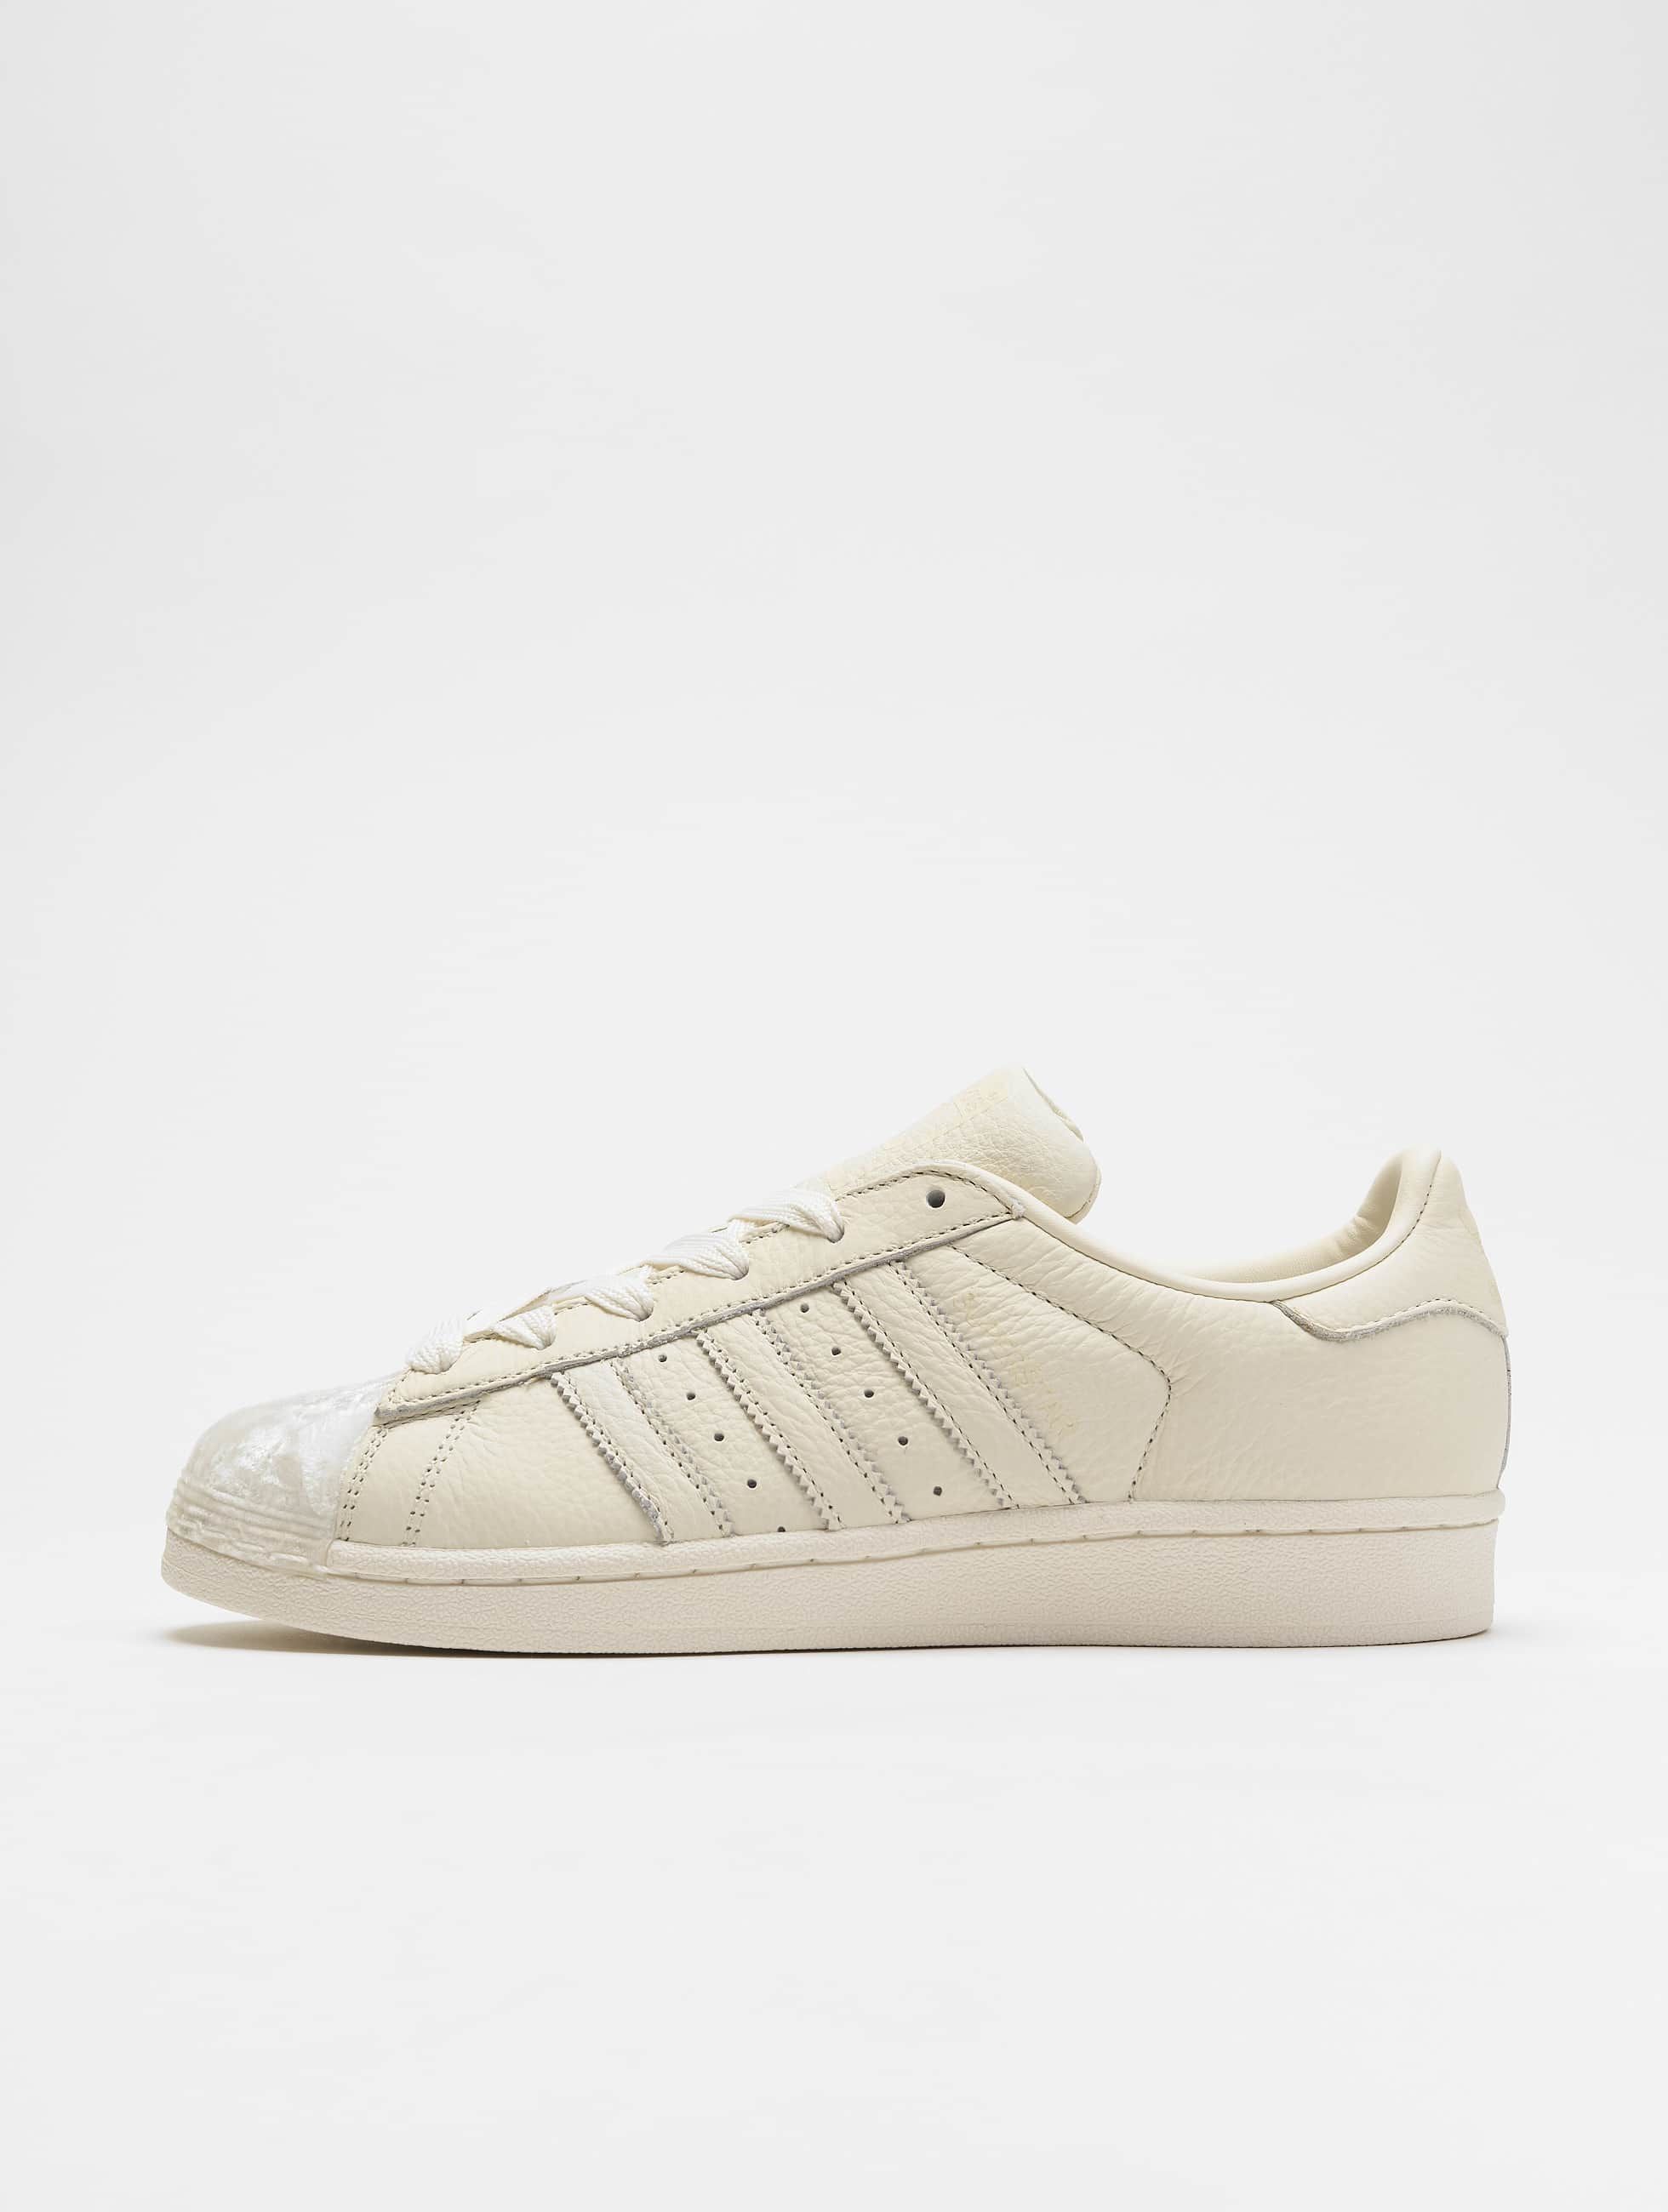 adidas I 5923 W Real Lilac Hi Res Yellow Ftw White | Footshop